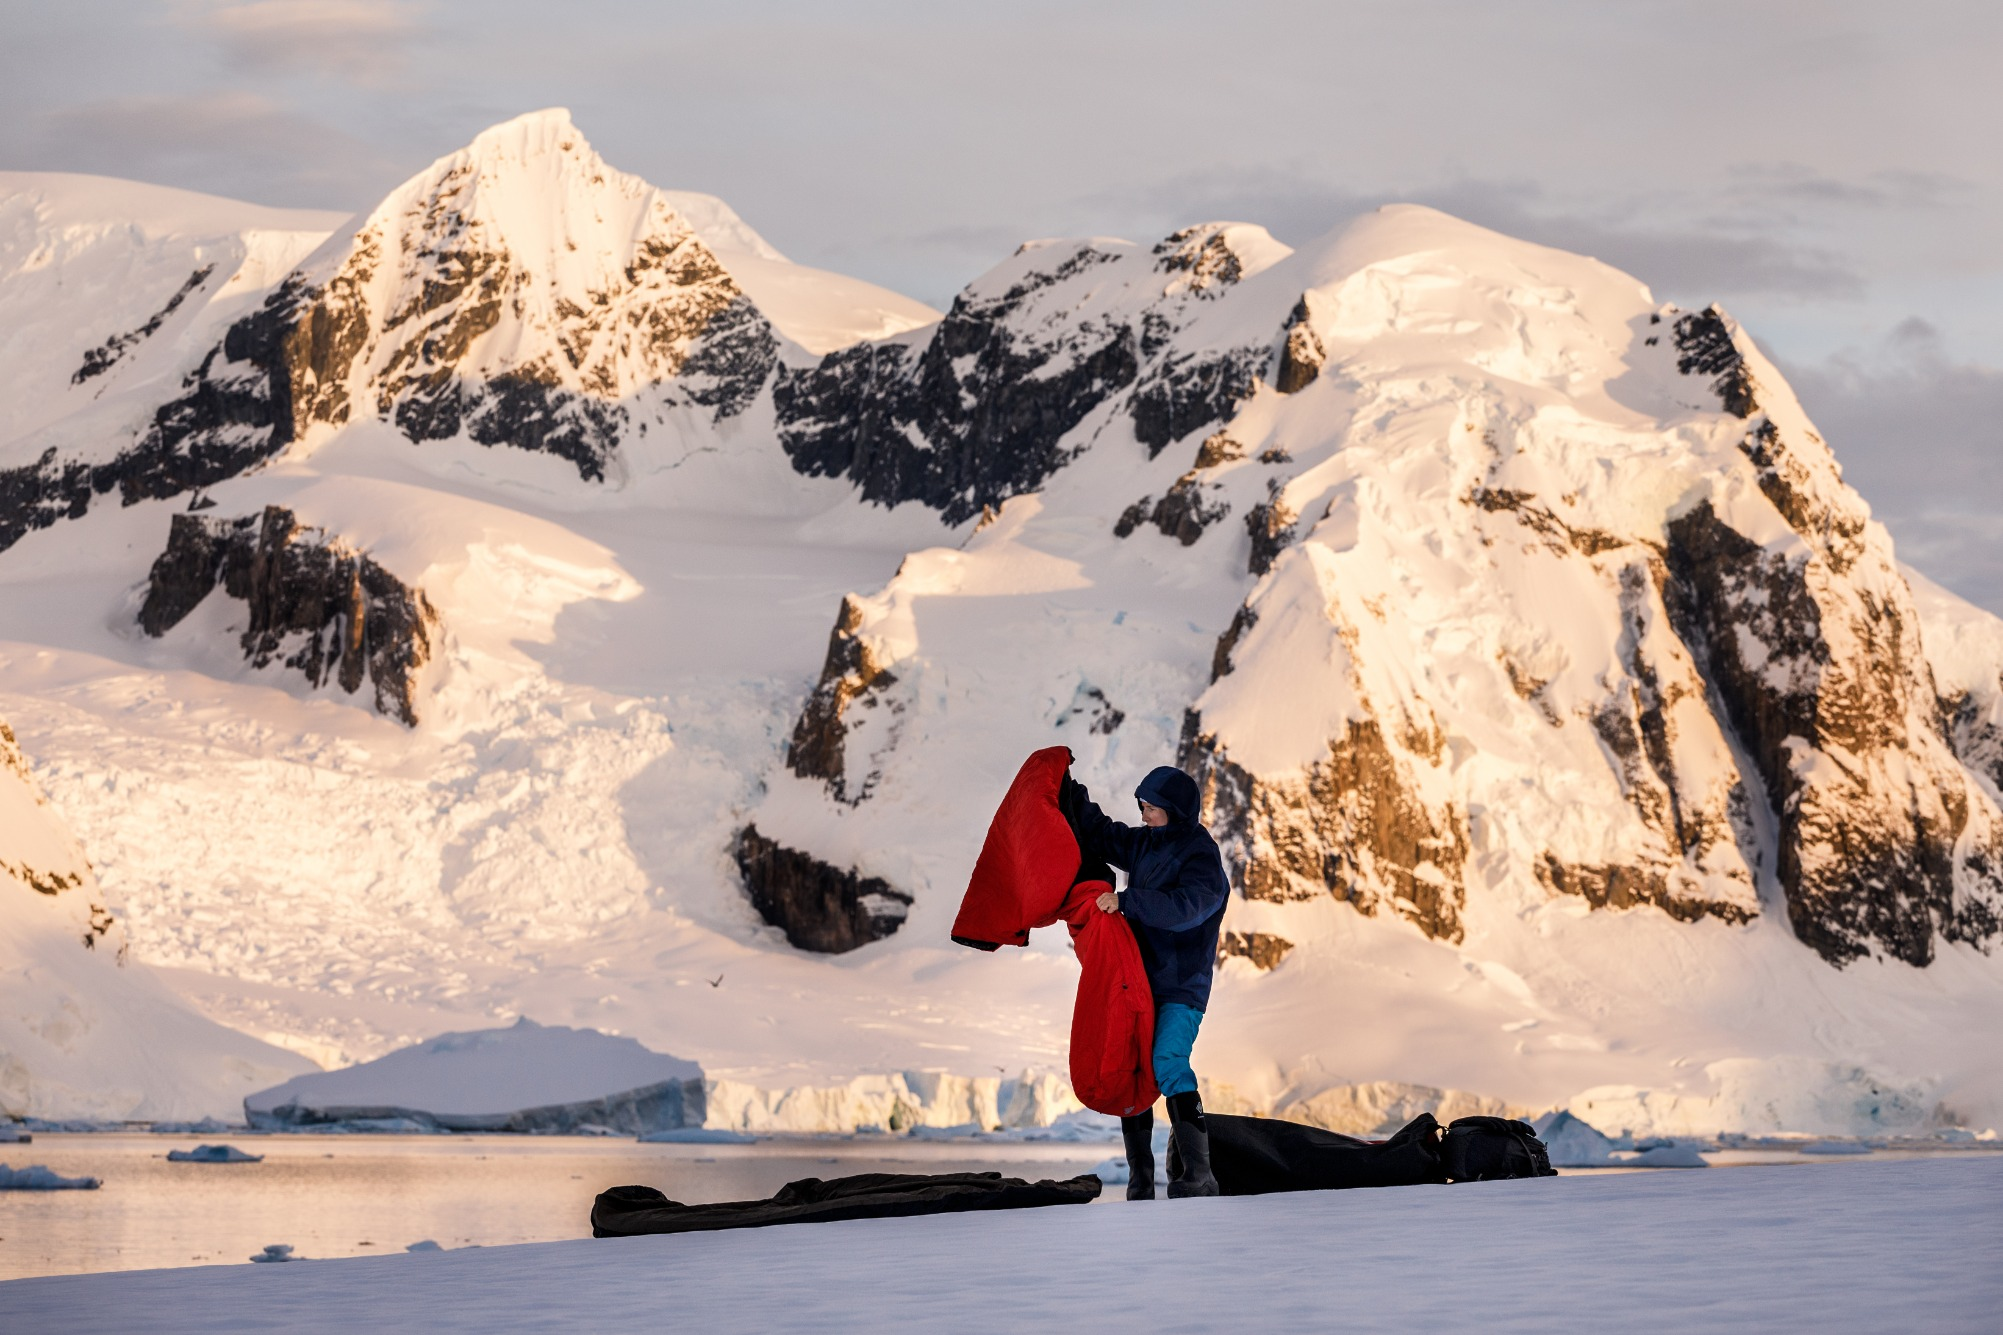 A traveller prepares a bivvy bag in Antarctica ready to sleep out on the snow